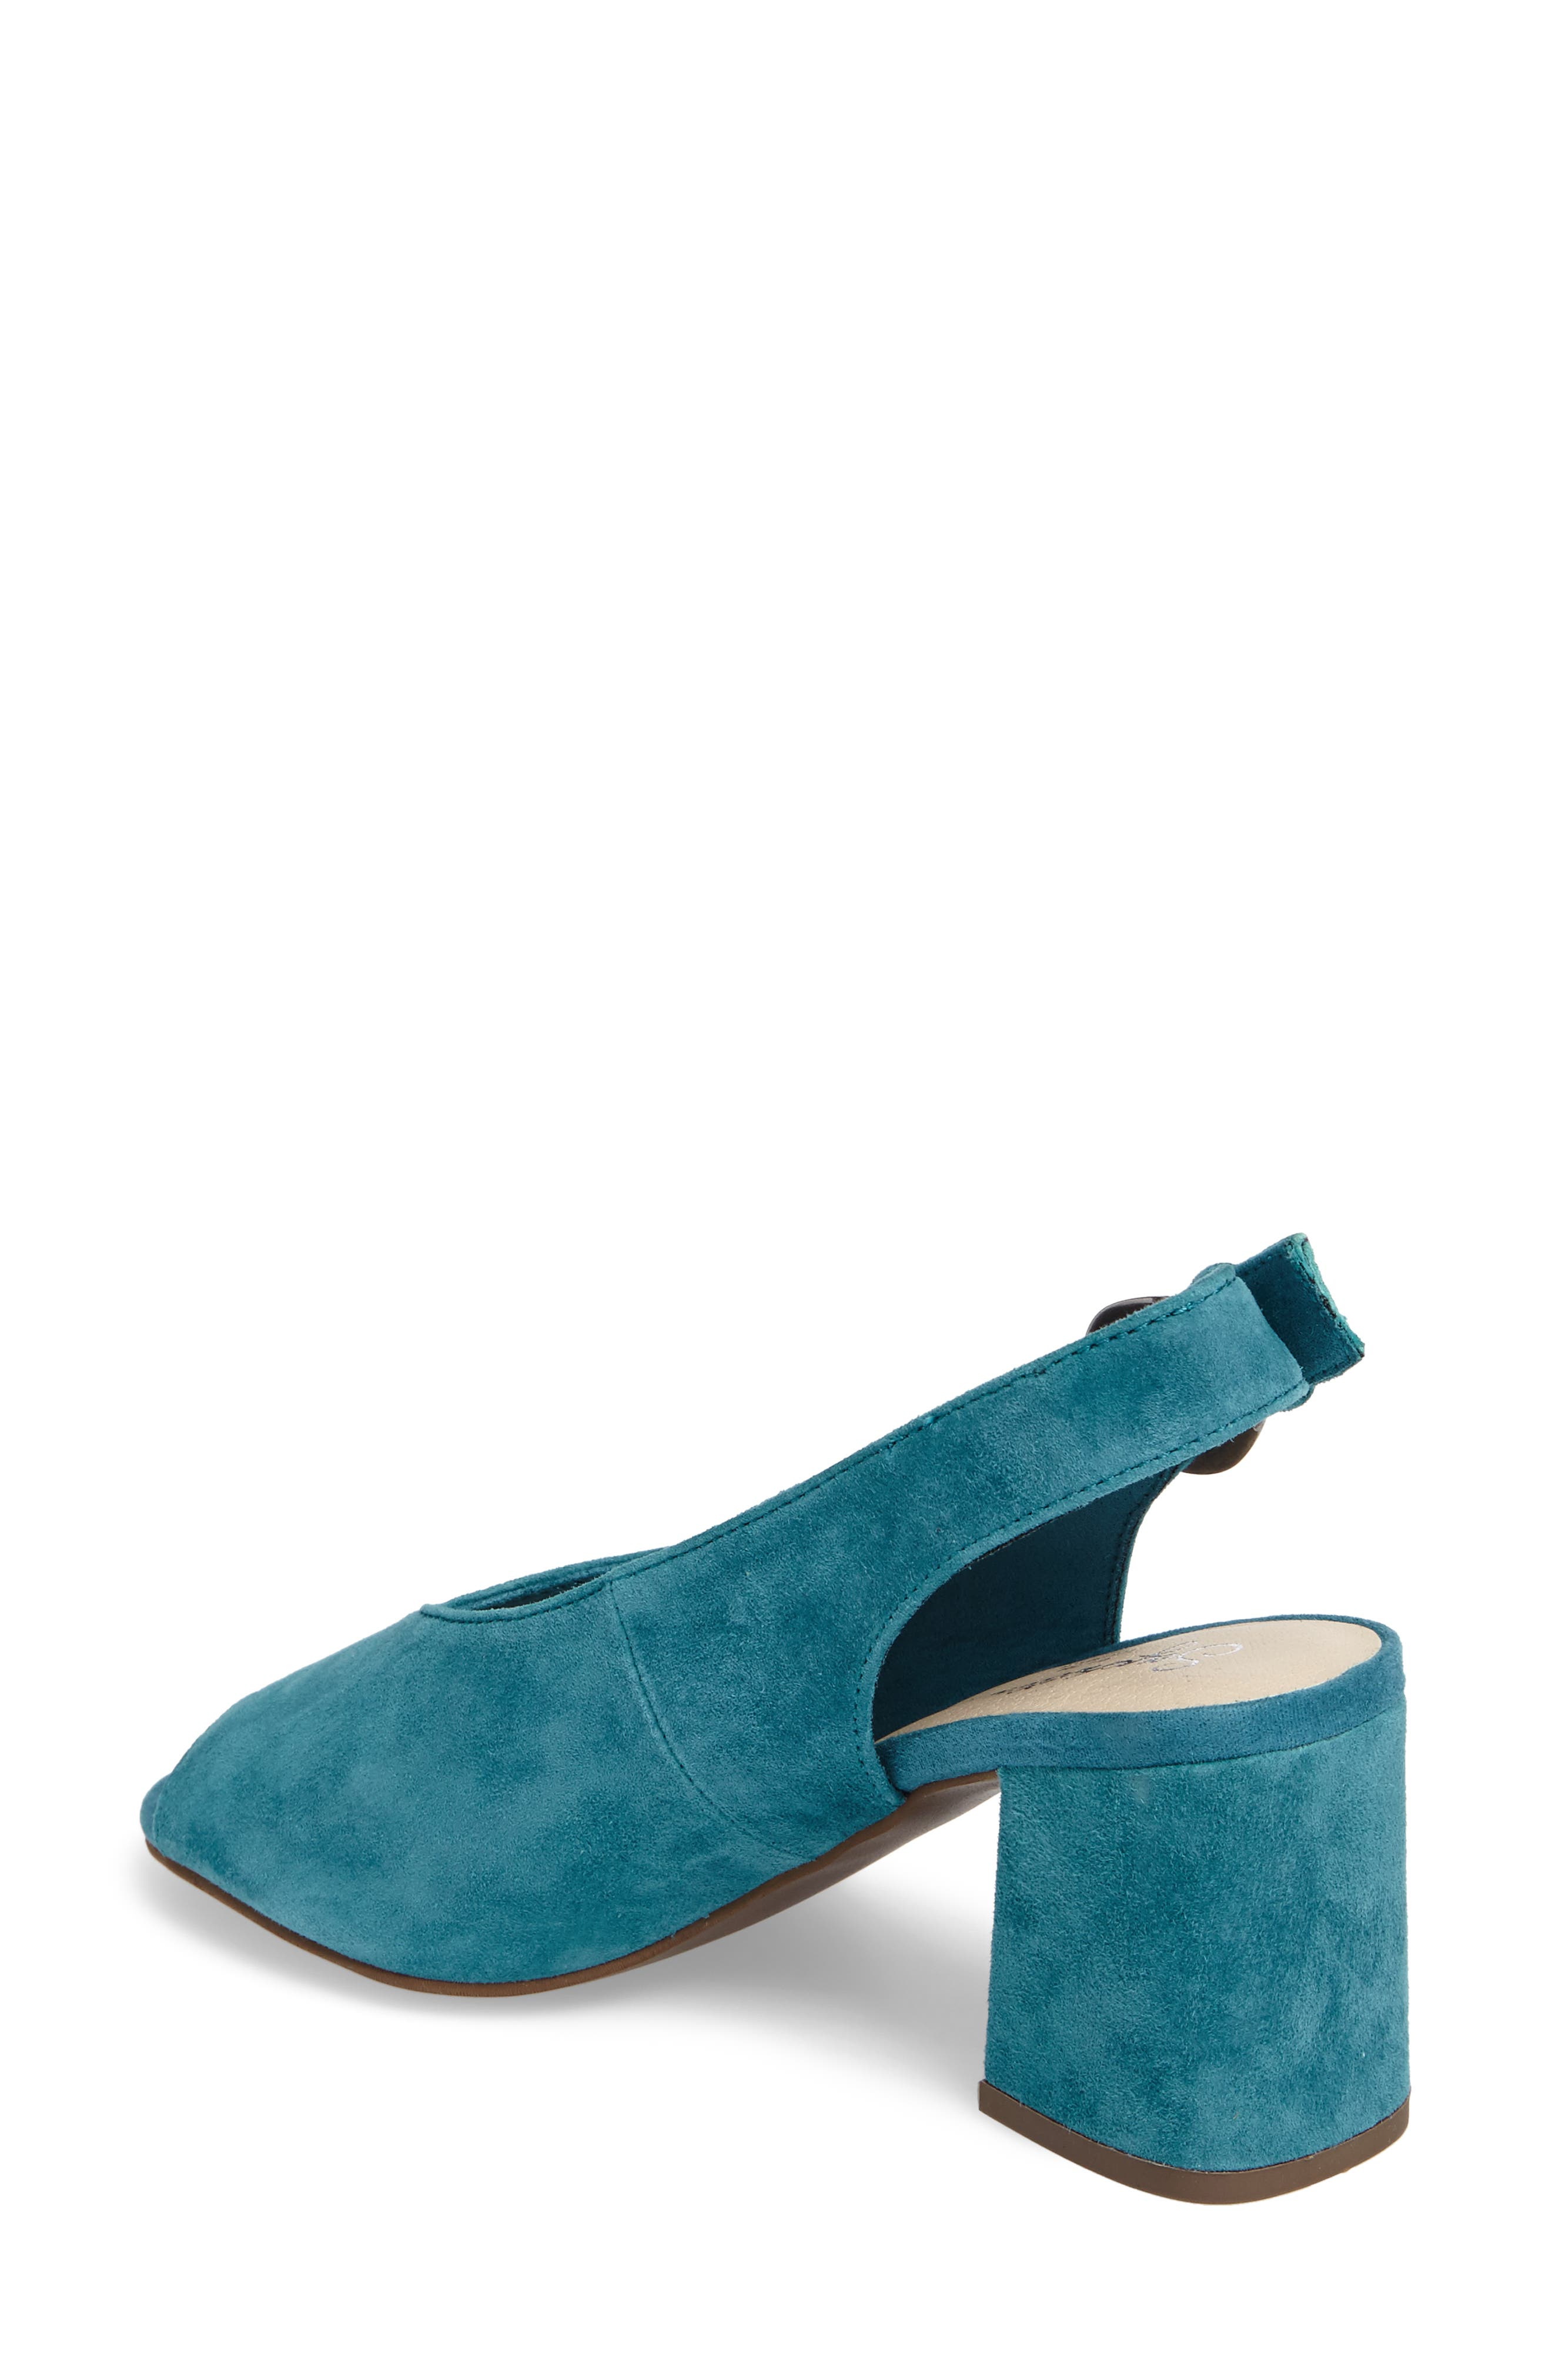 Playwright Slingback Sandal,                             Alternate thumbnail 2, color,                             TEAL SUEDE